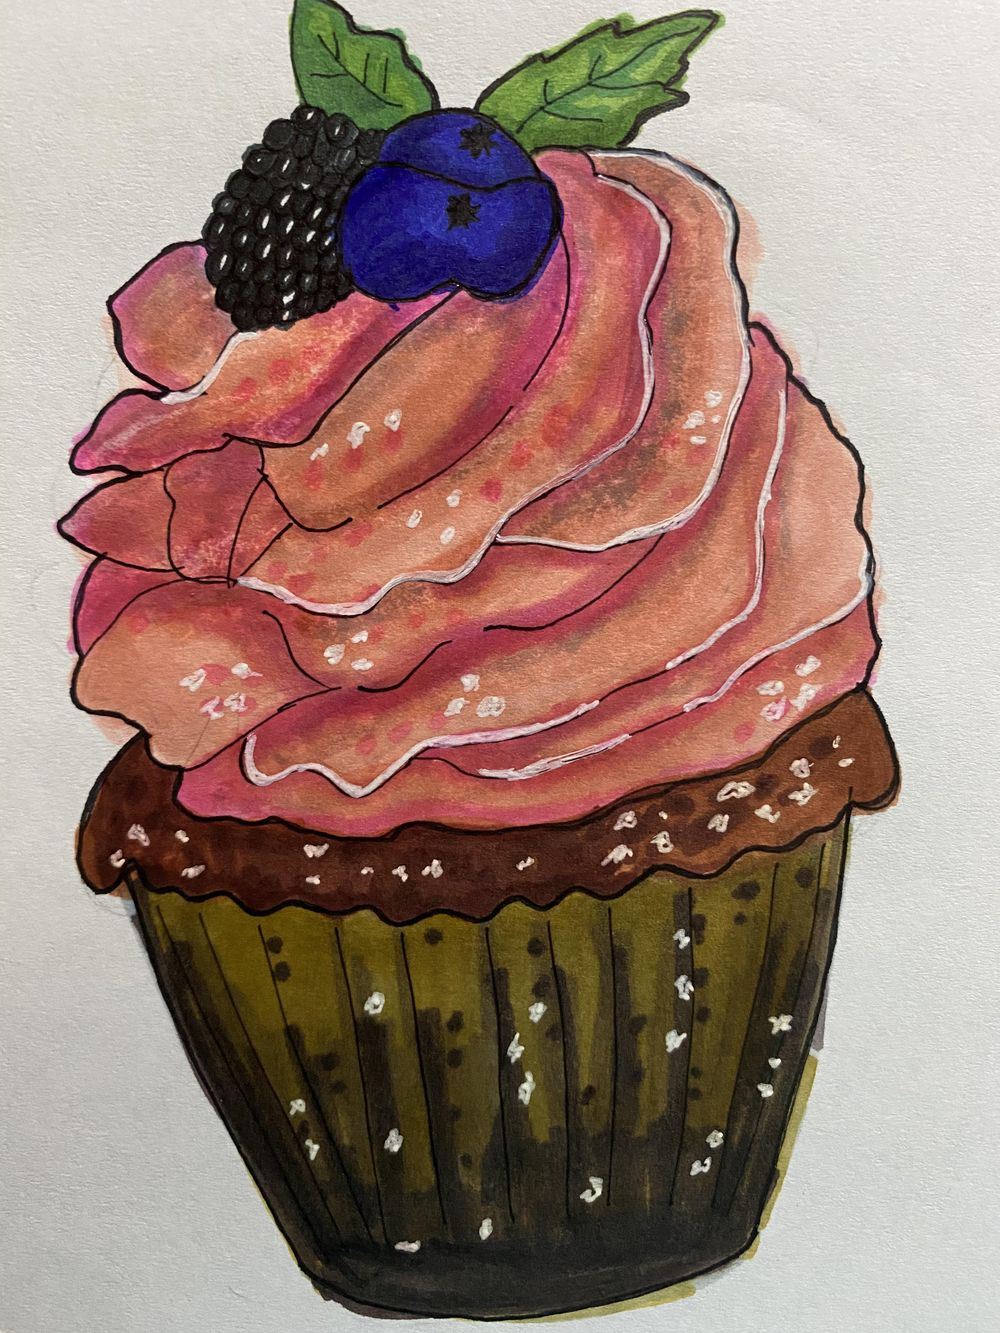 Pink Cupcake - image 1 - student project